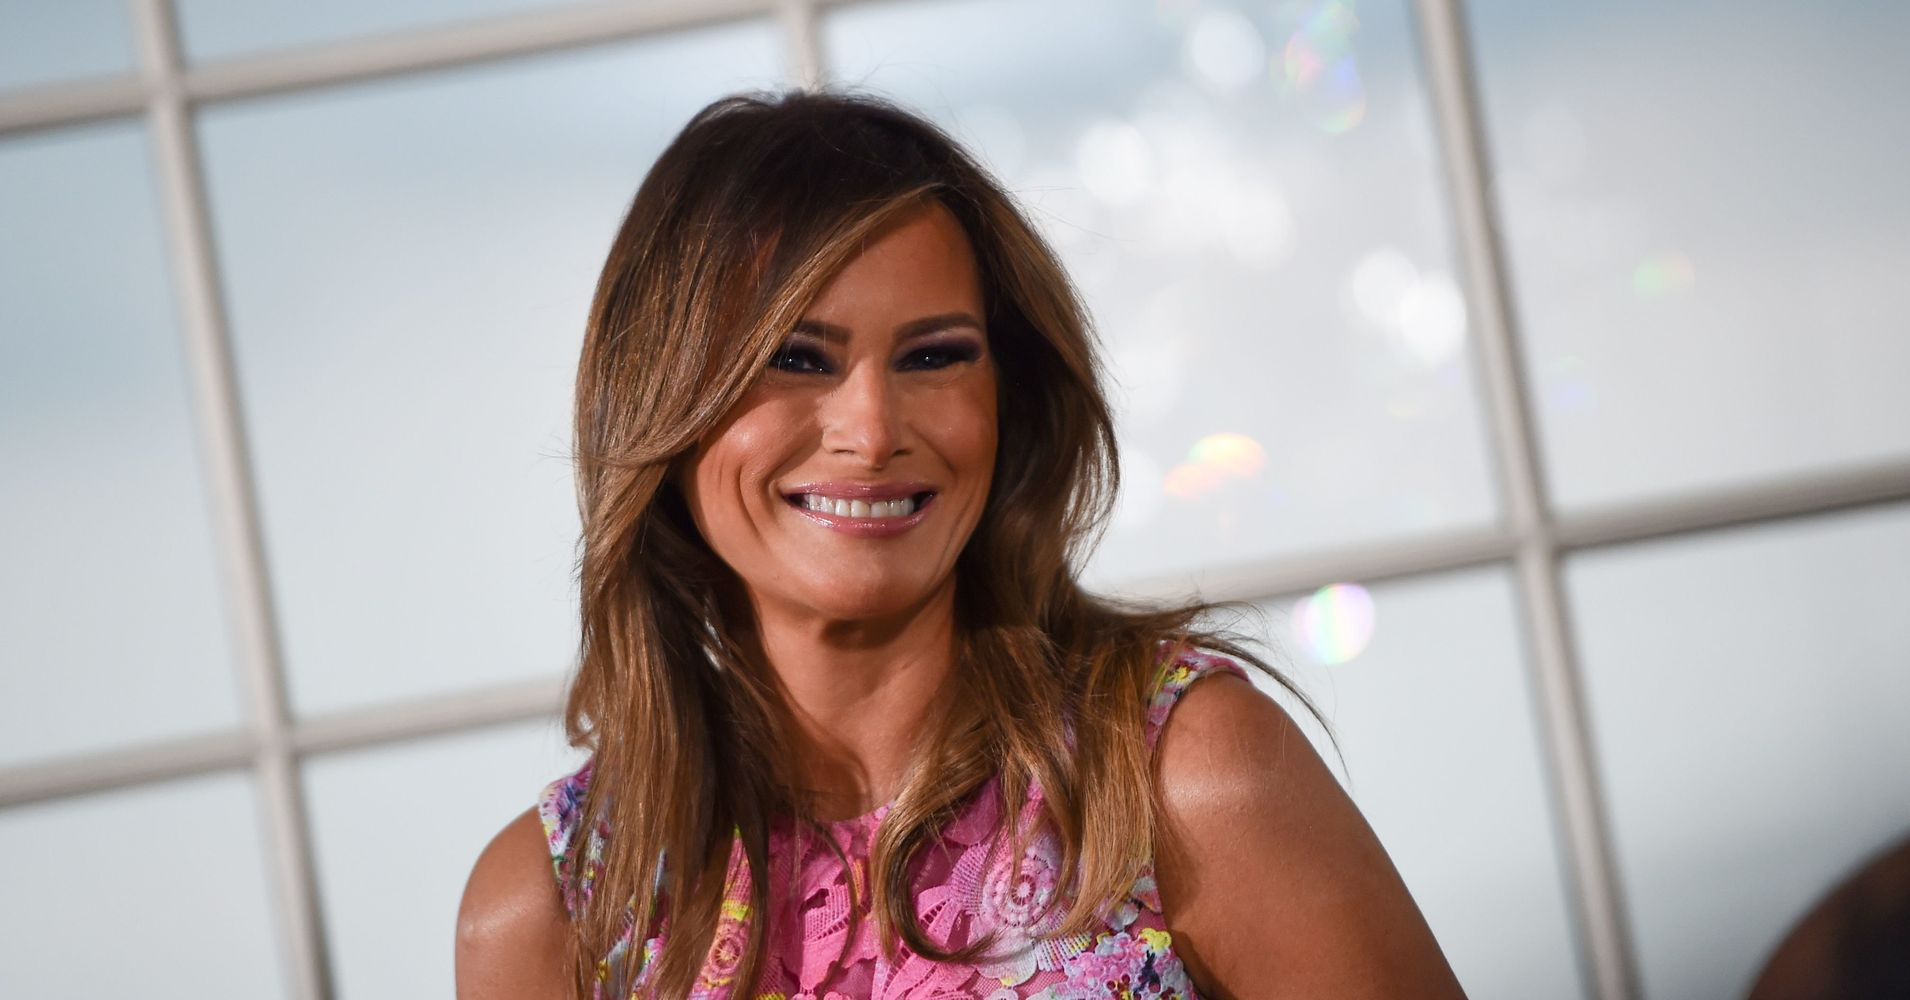 Melania Trump Speaks At Anti-Cyberbullying Summit While Donald Trump Cyberbullies